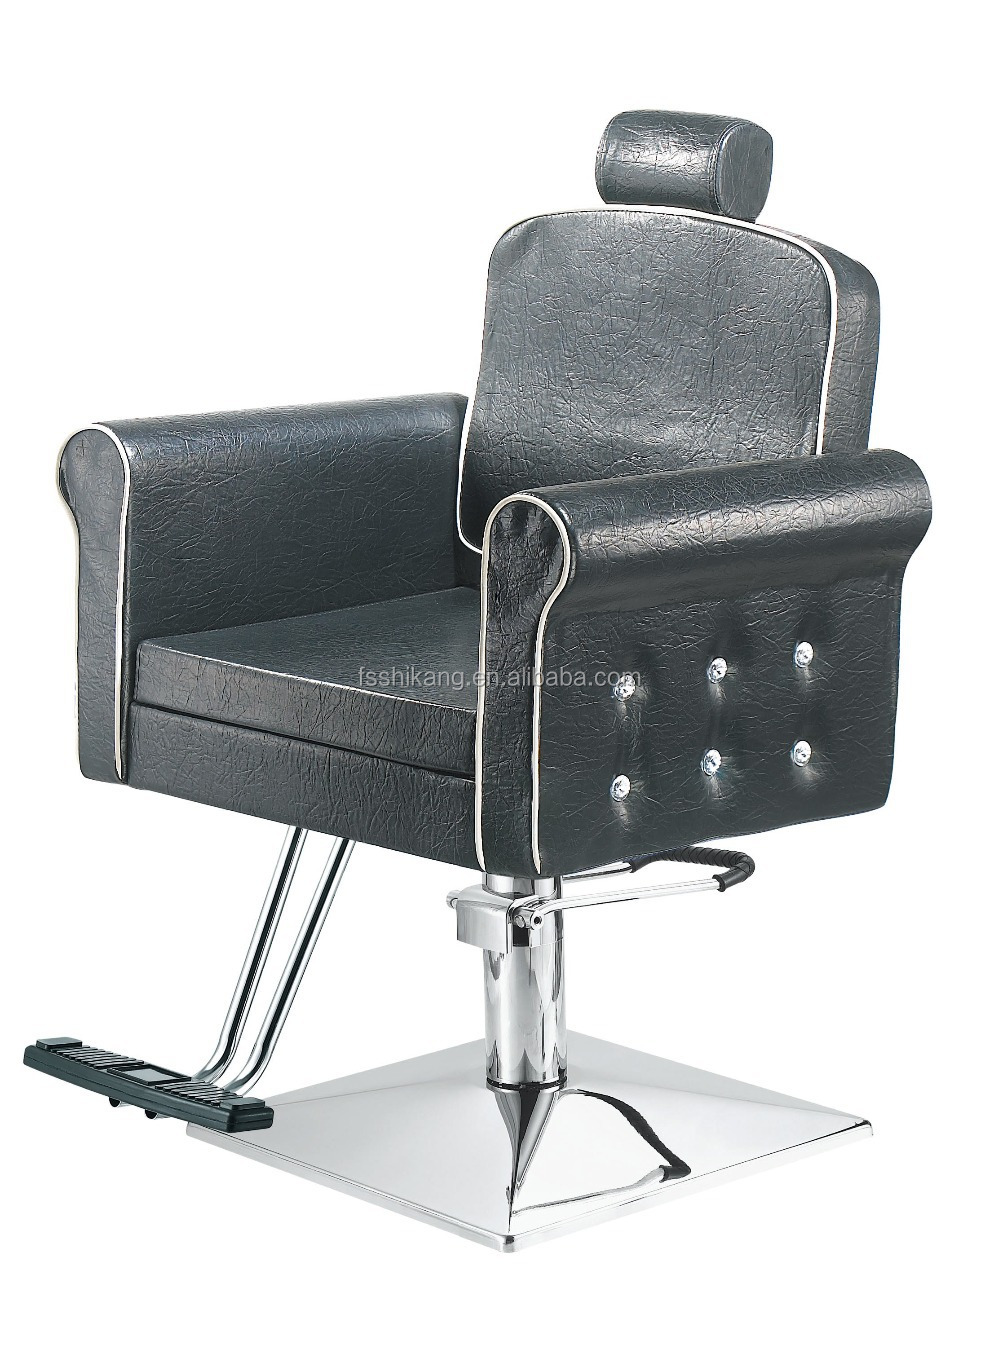 luxuriant style wholesale barber chair styling chair